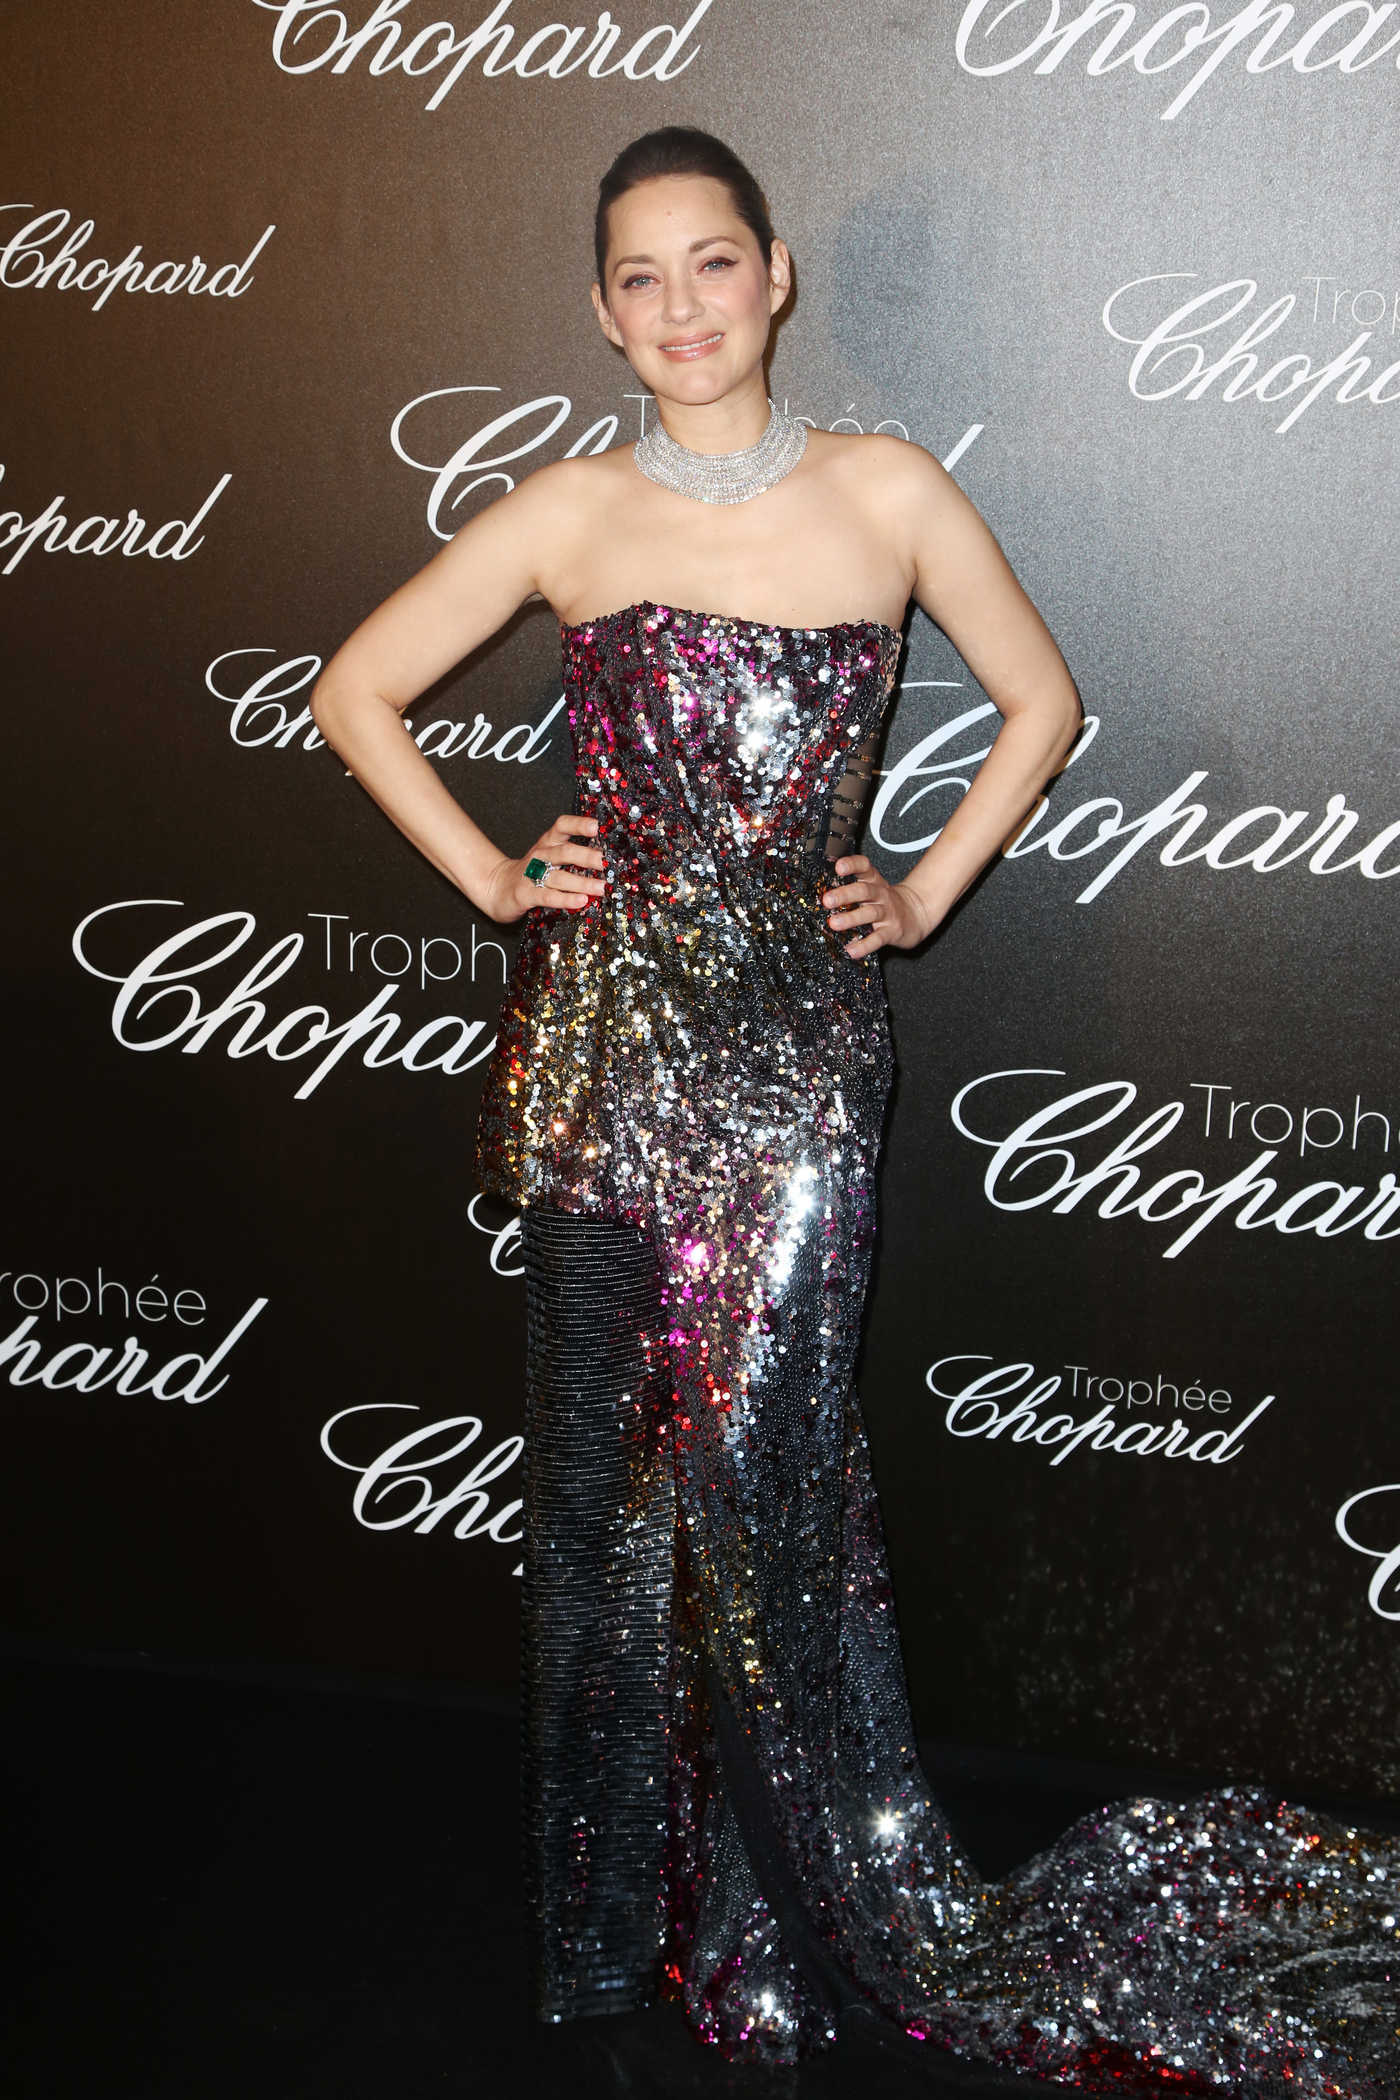 Marion Cotillard at the Chopard Trophy Event in Cannes 05/22/2017